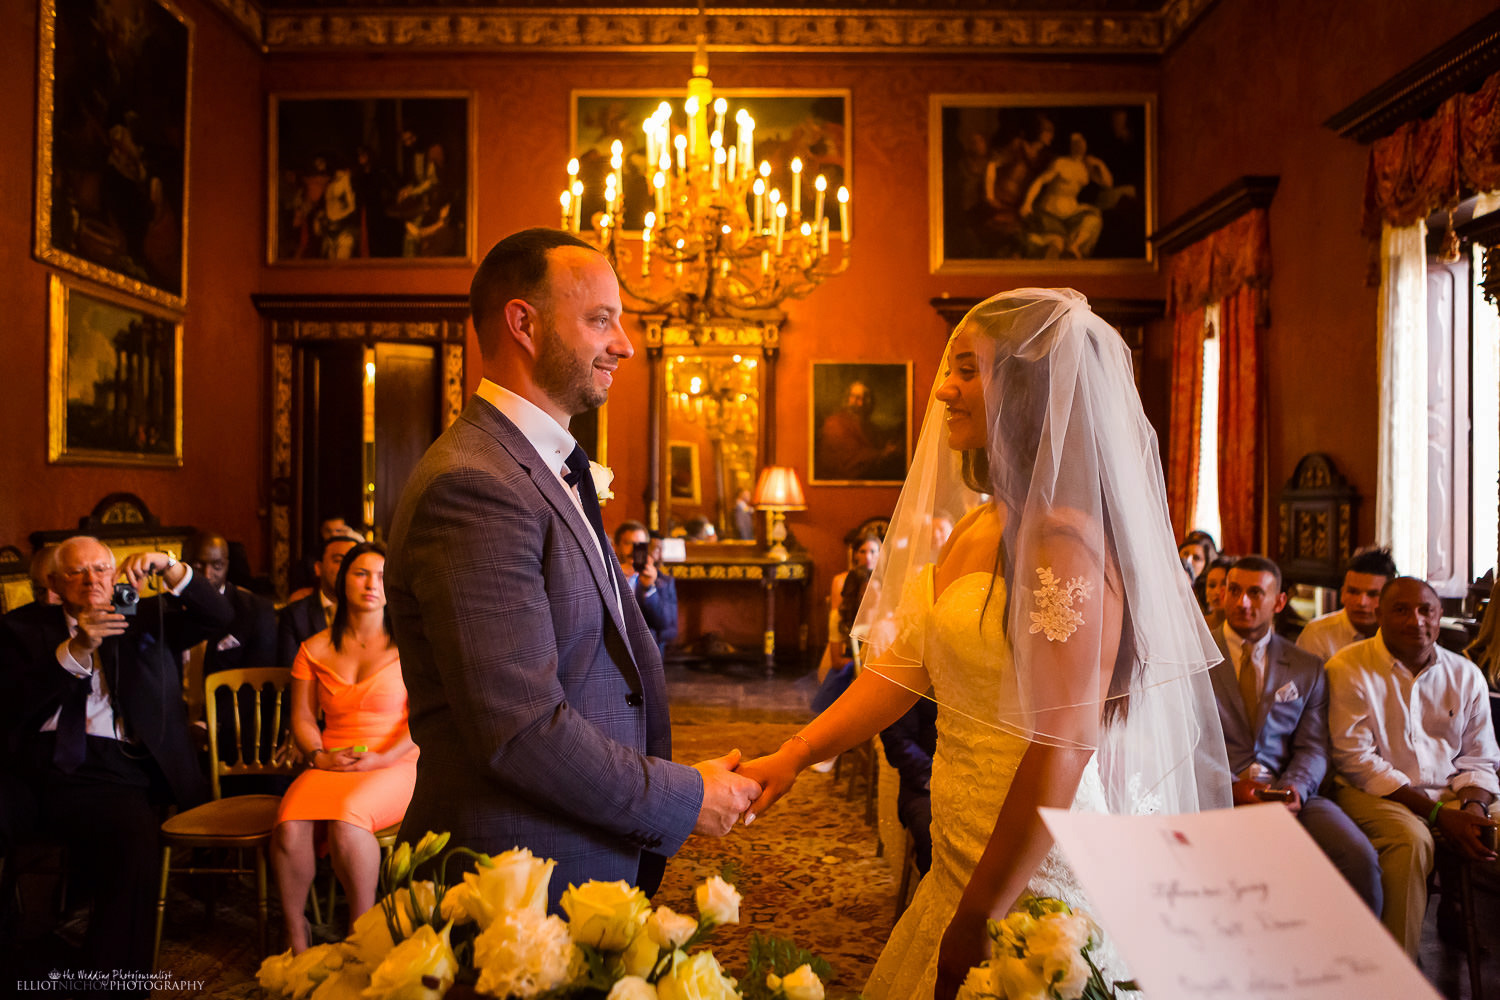 Bride and Groom hold hands during the wedding ceremony at the Palazzo Parisio.